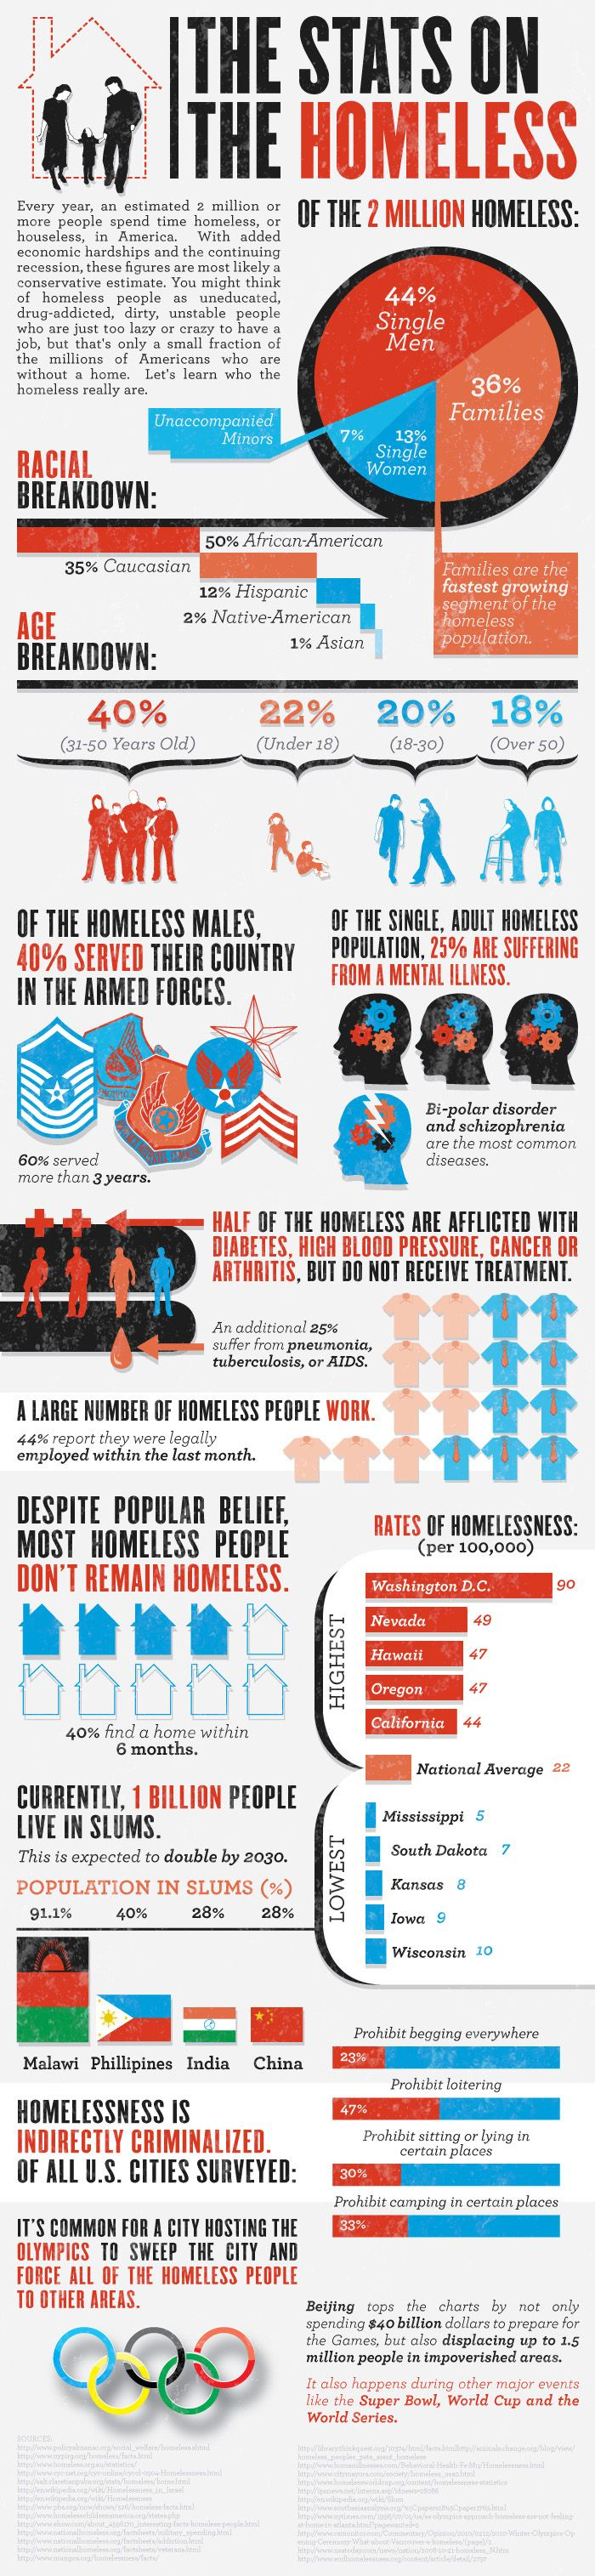 Statistics on homelessness in the US and abroad. Don't hide from the truth. When you see a need, HELP.